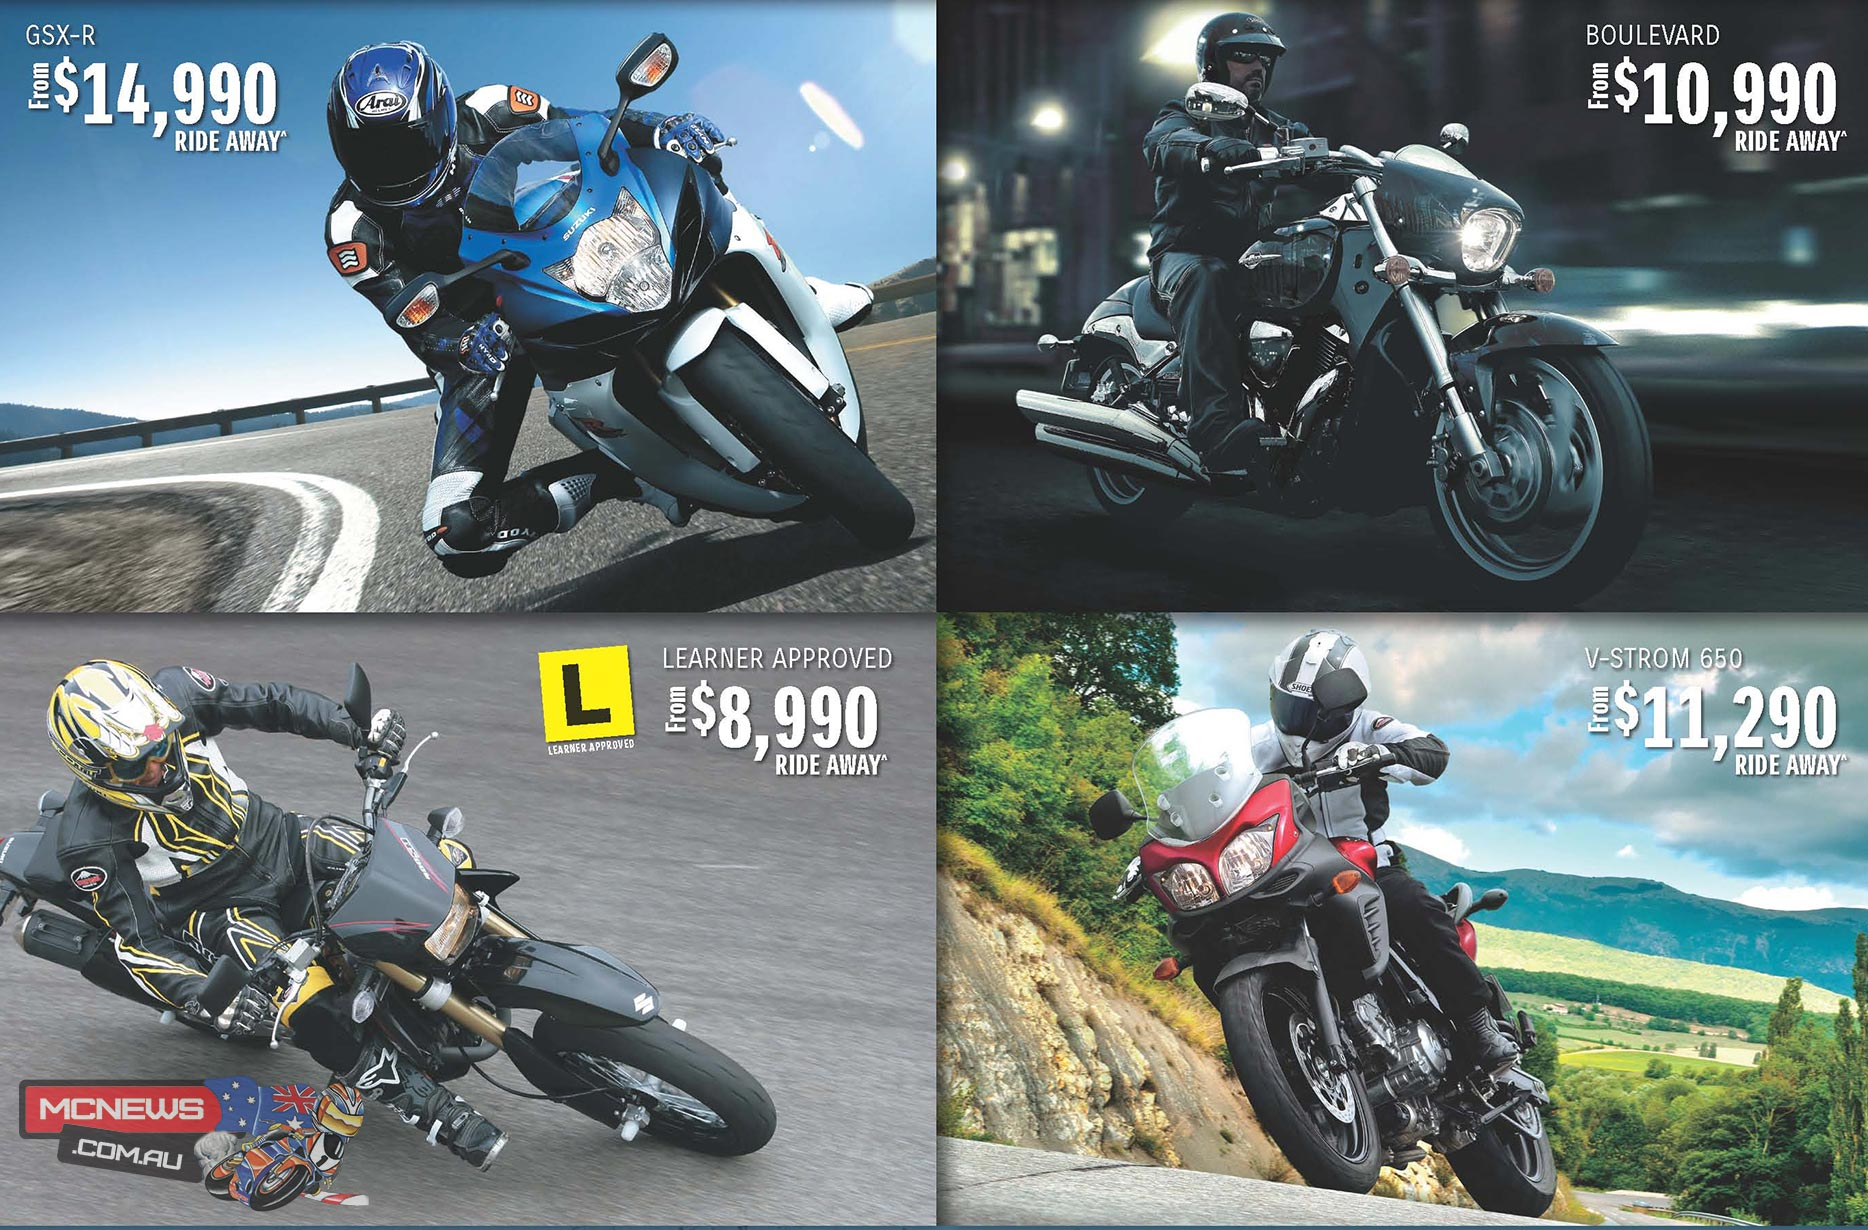 On-road costs consist of 12 months registration, Compulsory Third Party (CTP) insurance, Government stamp duty, dealer pre-delivery and freight charges. From participating Dealers only. Promotion excludes 250cc models. Terms and Conditions apply. Expires August 31